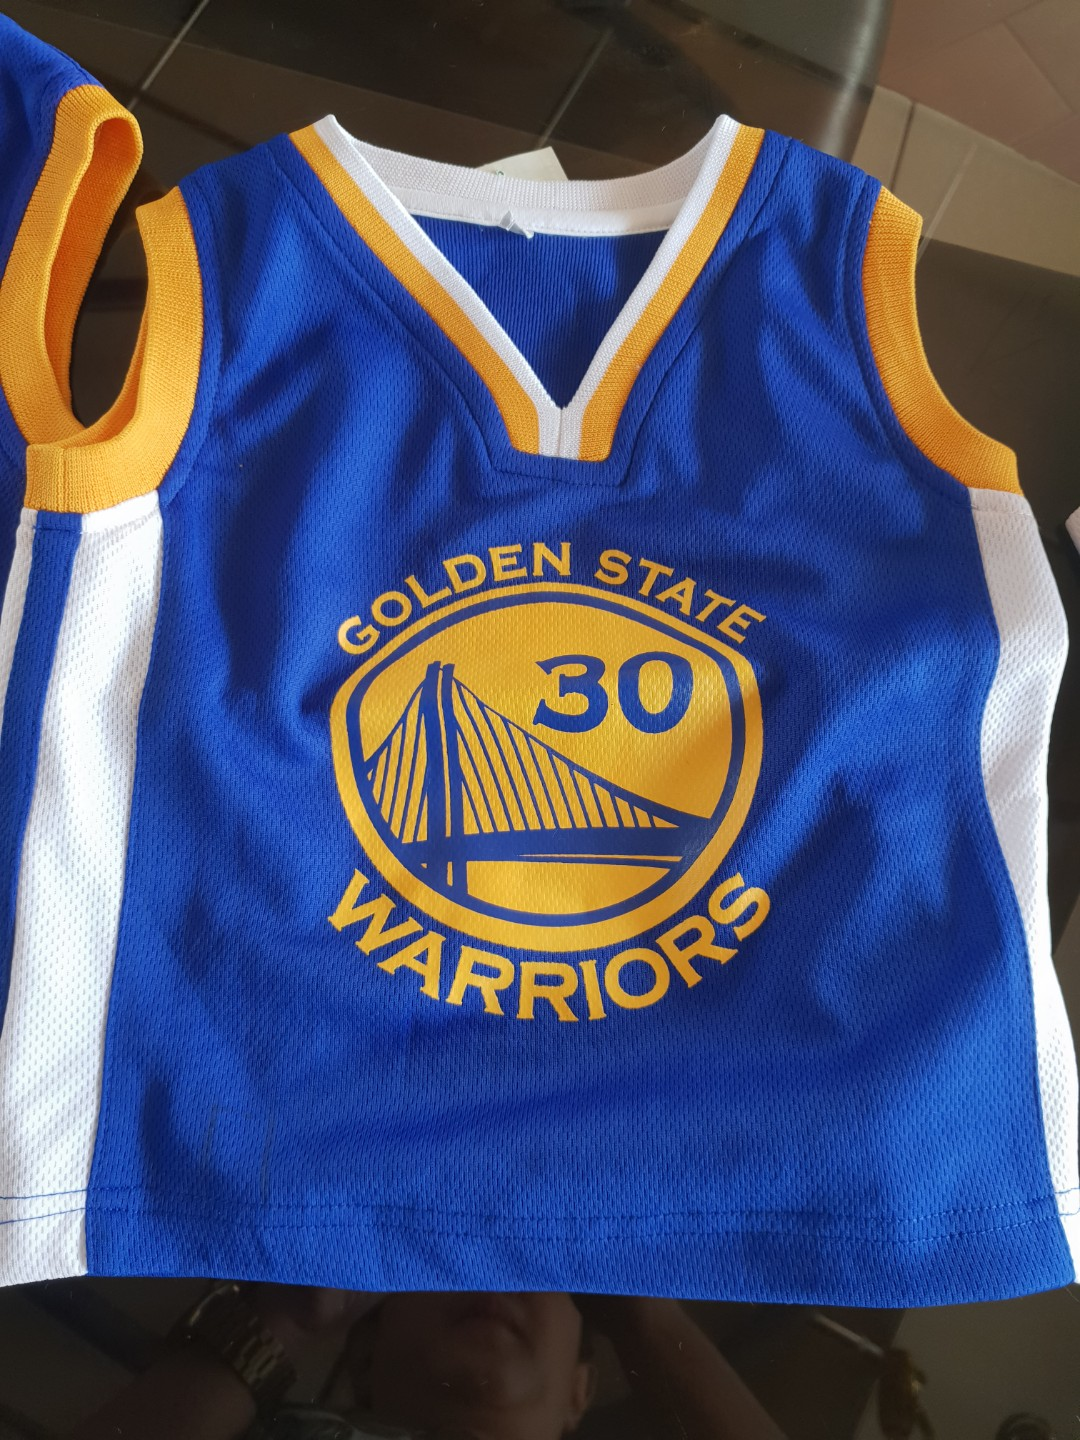 innovative design 83f01 44ad9 Warriors basketball jersey, Babies & Kids, Boys' Apparel on ...